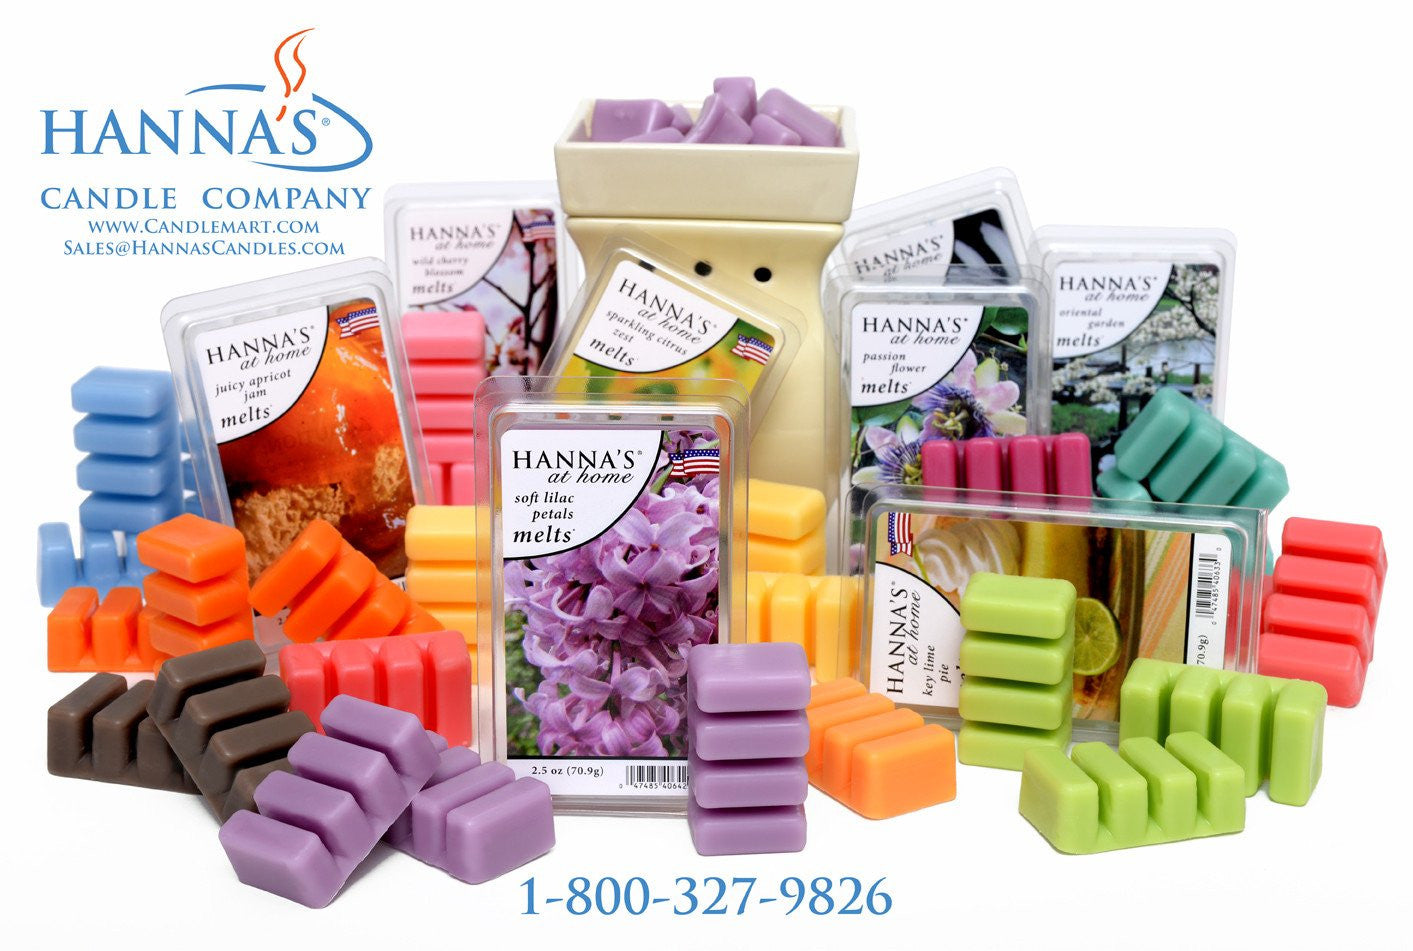 Juicy Apricot Jam Scented Wax Melts Melts Candlemart.com $ 2.49